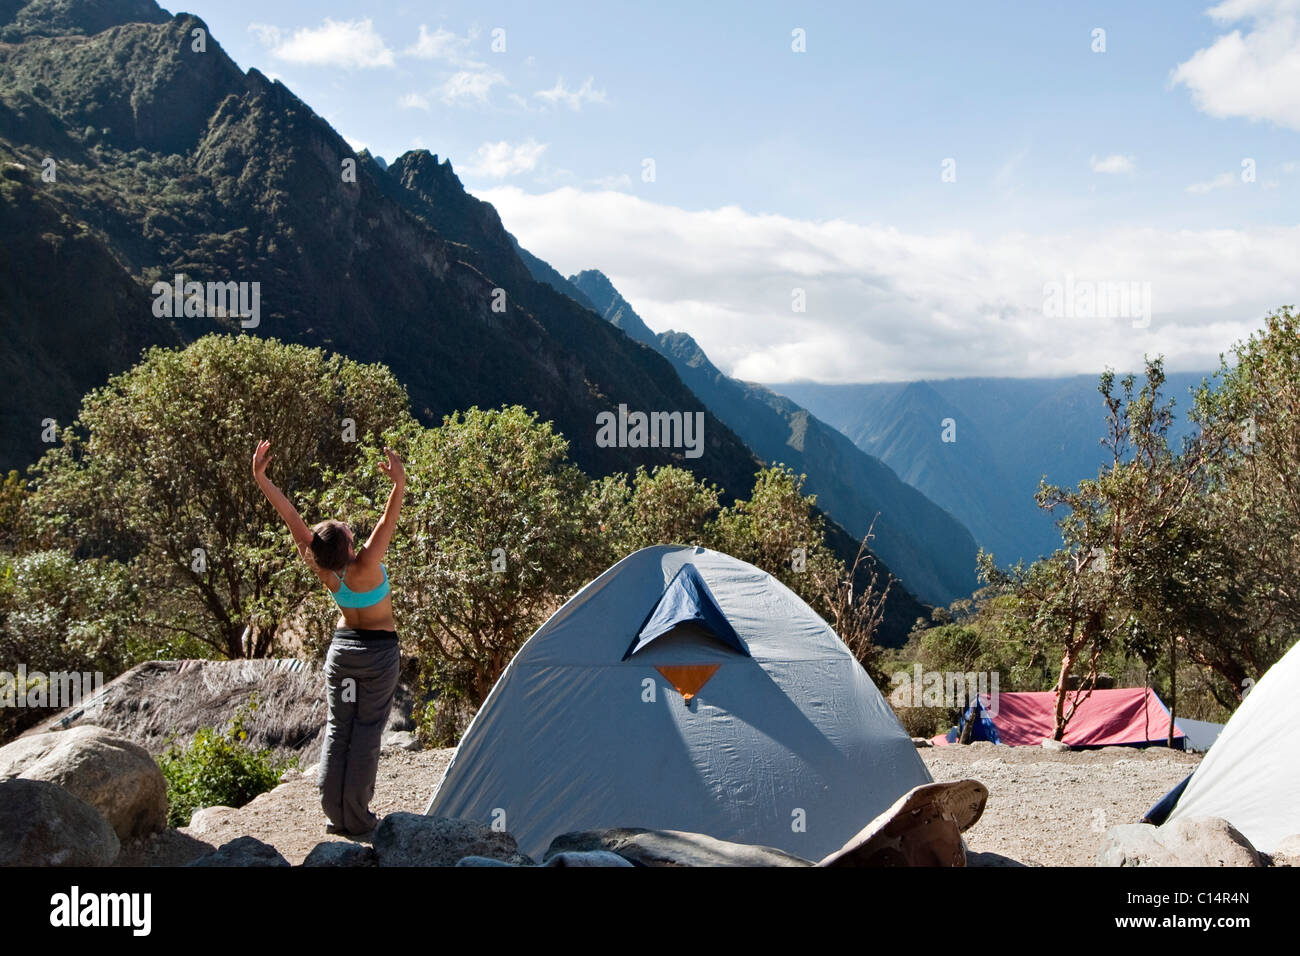 A young woman stretches as she arrives to camp after a long day's hike. - Stock Image